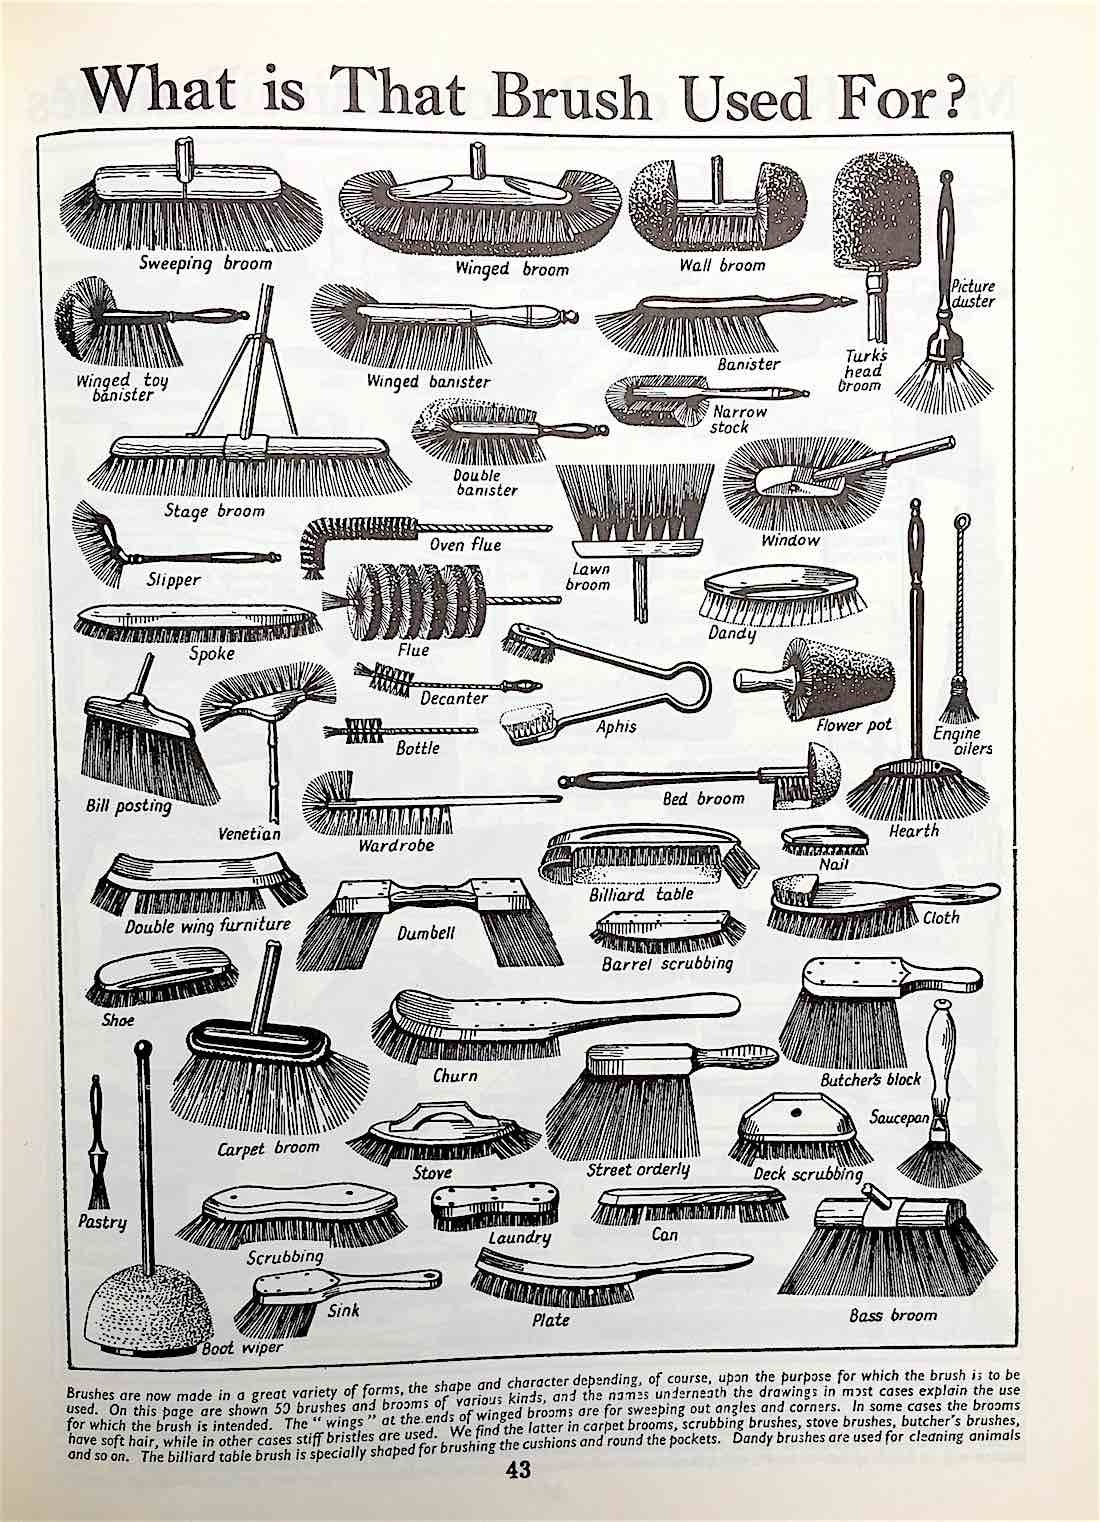 Mann's Pictorial Dictionary and Cyclopedia – The most miscellaneous miscellany out there Mann's Pictorial Dictionary and Cyclopedia Vol. 1 National Library Publications 1960, 240 pages, 8.5 x 11 inches $20 and up (used) Buy a copy on Amazon What are...